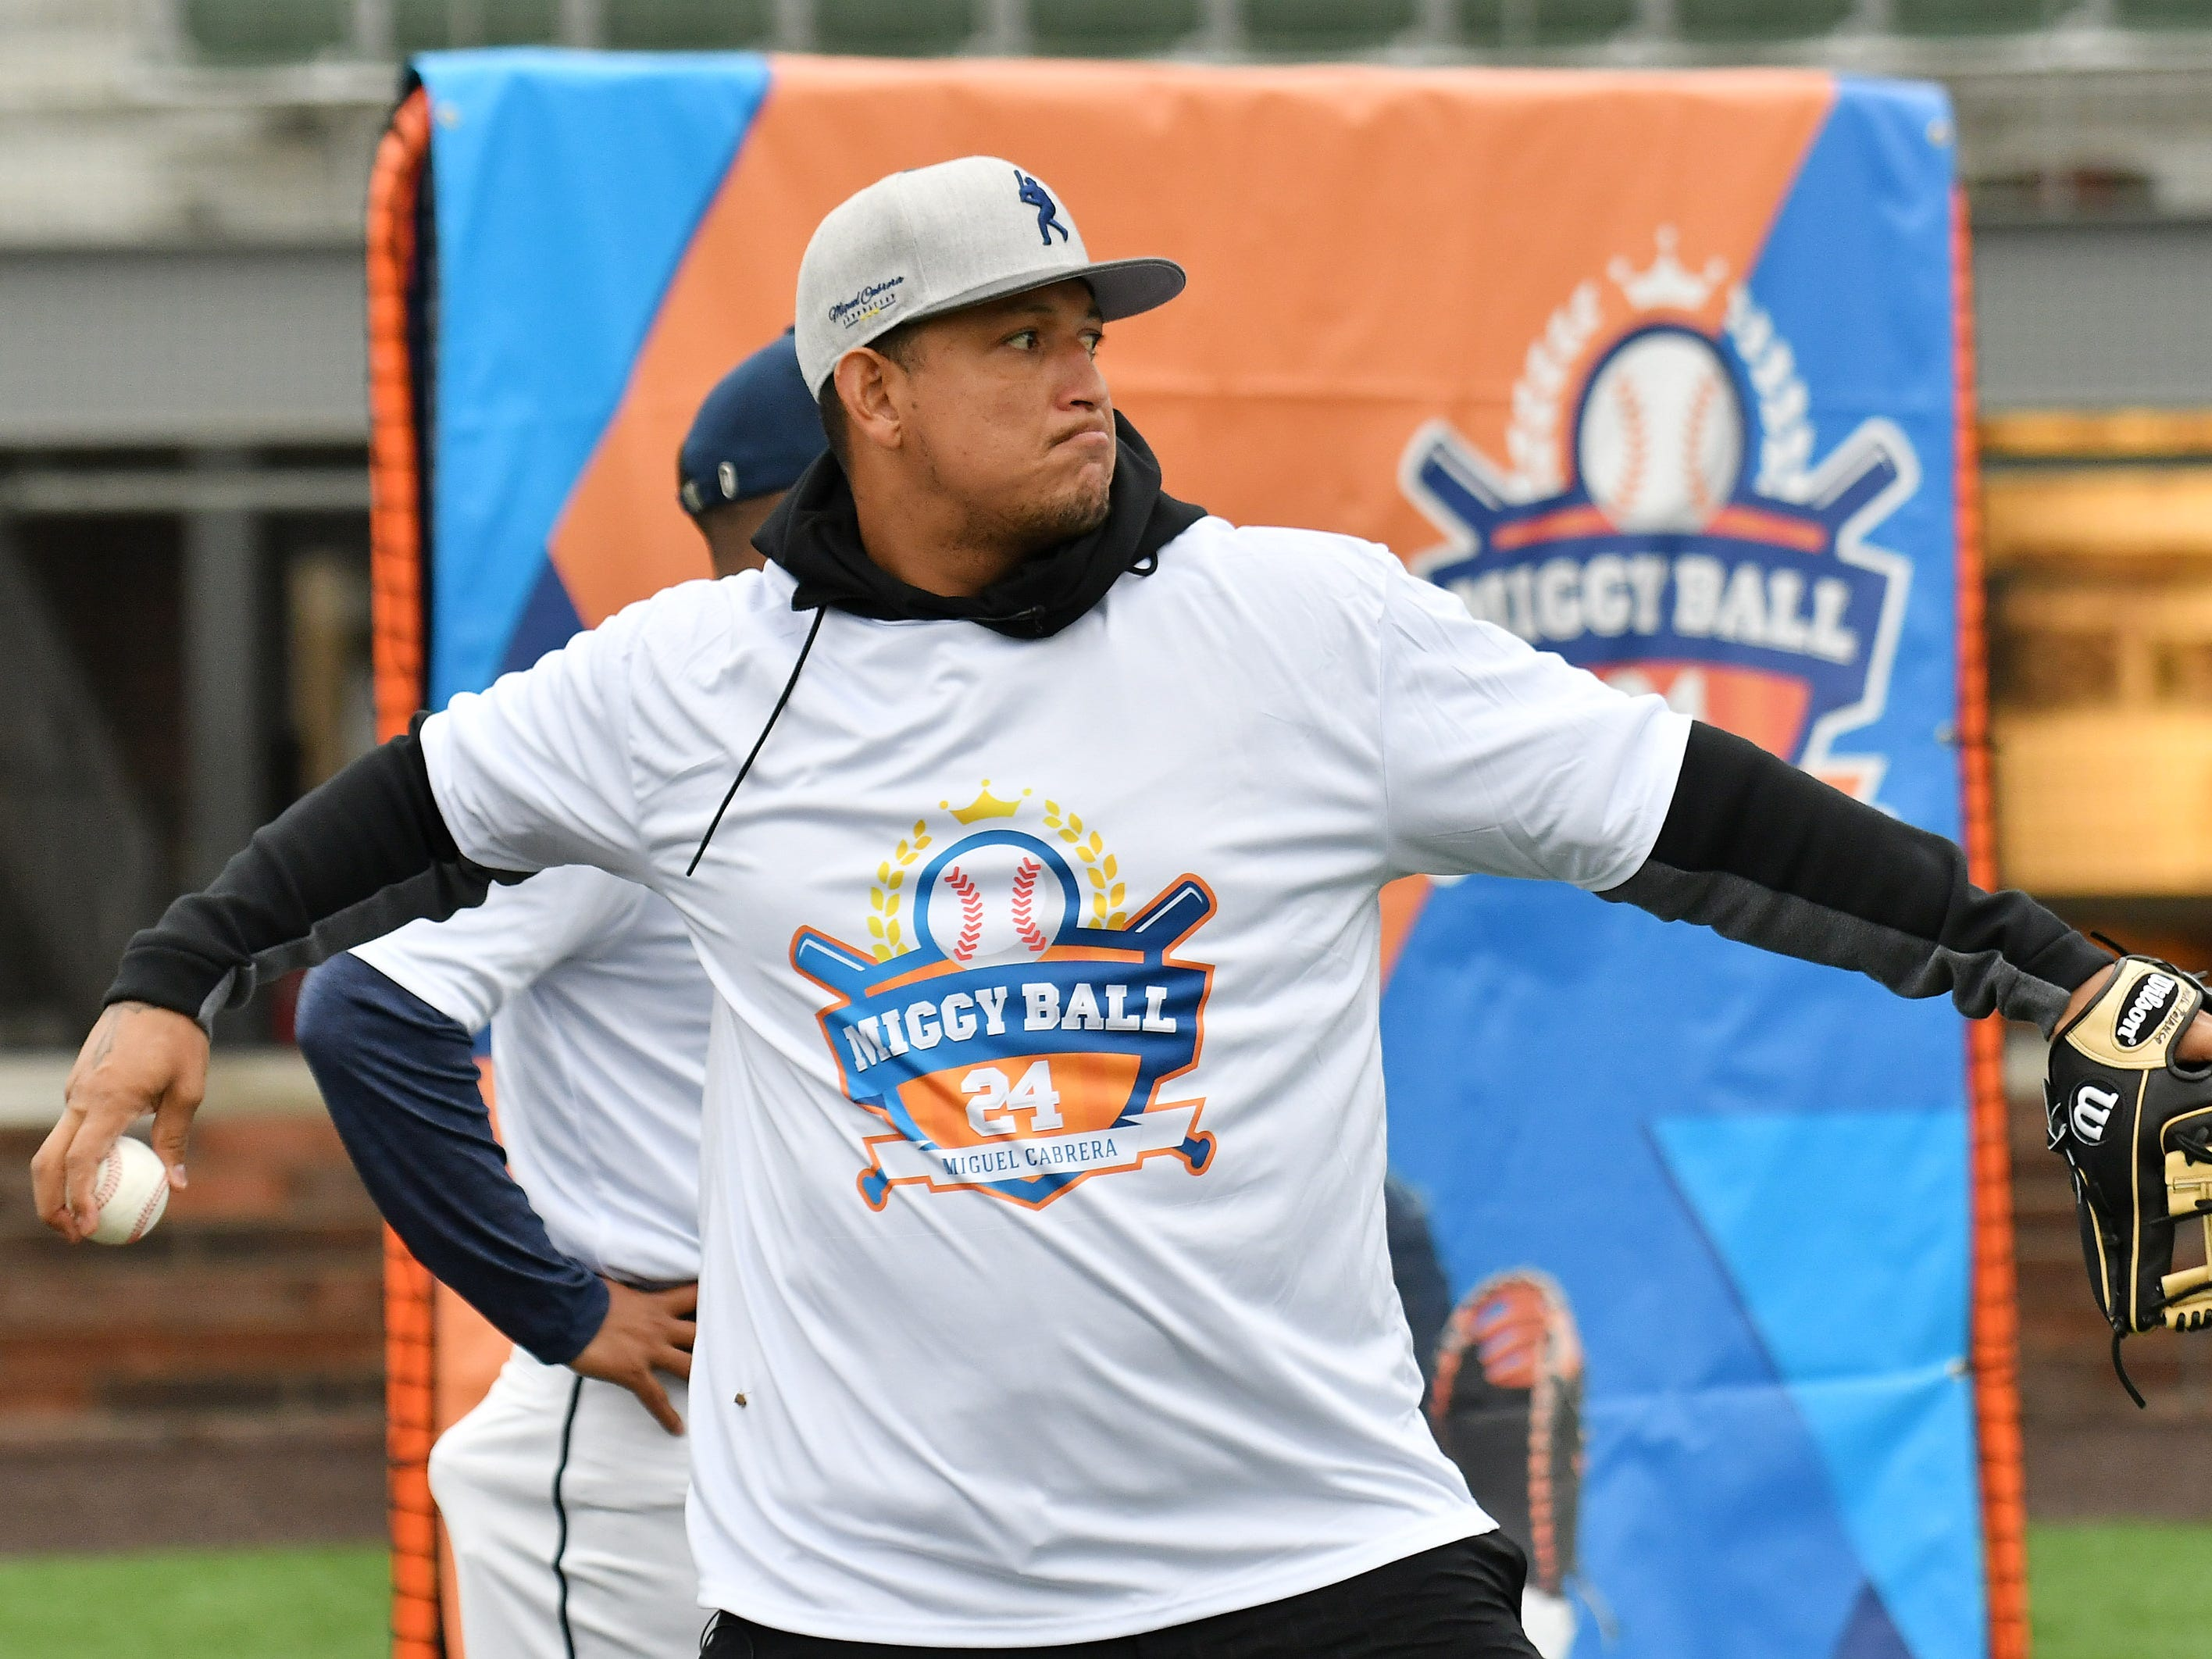 Tigers' Miguel Cabrera plays toss at the Miggy Ball 24 event.